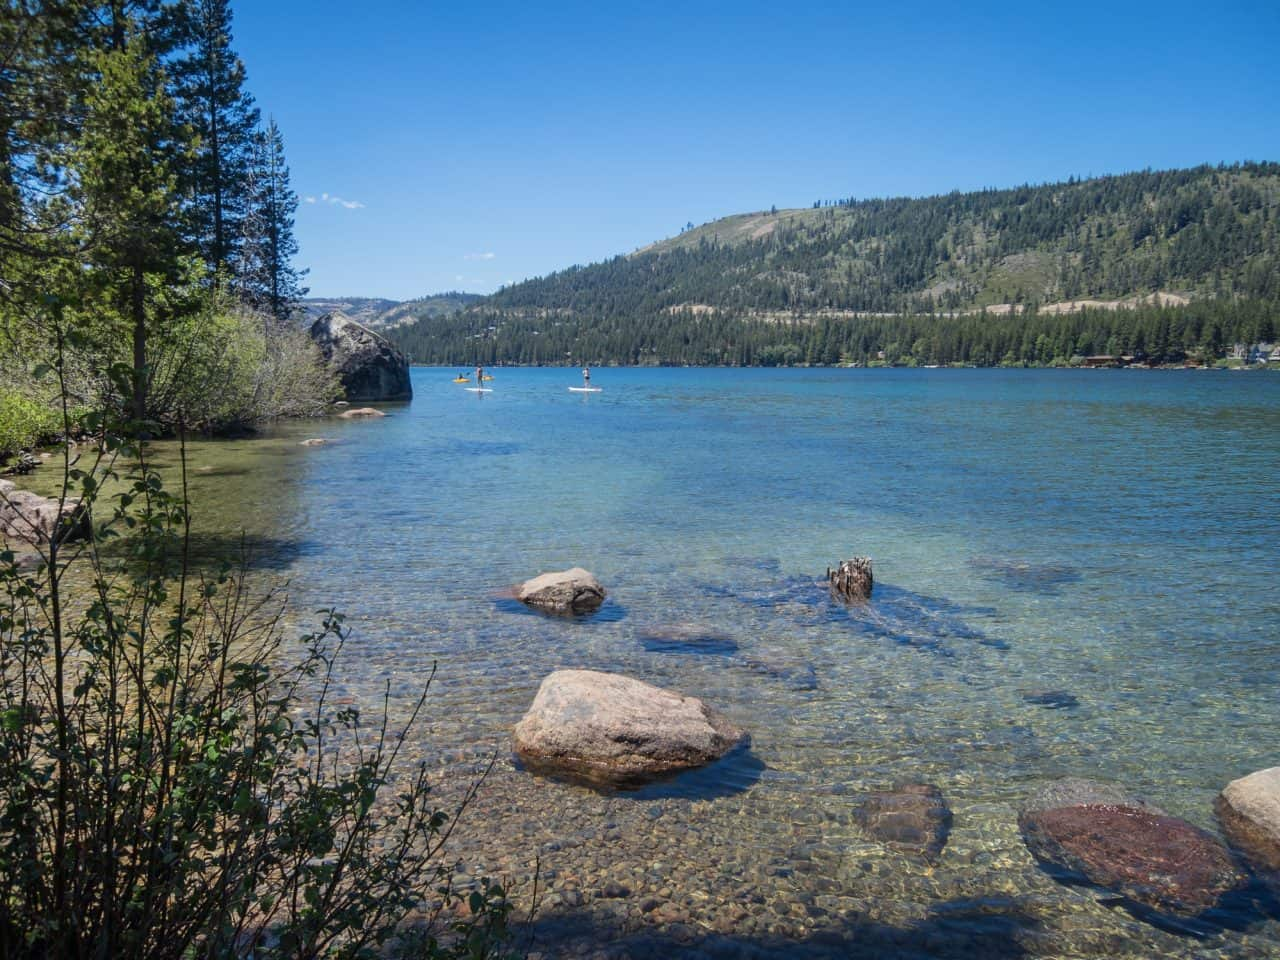 Clear waters of Donner Lake with paddle boarders in the background.